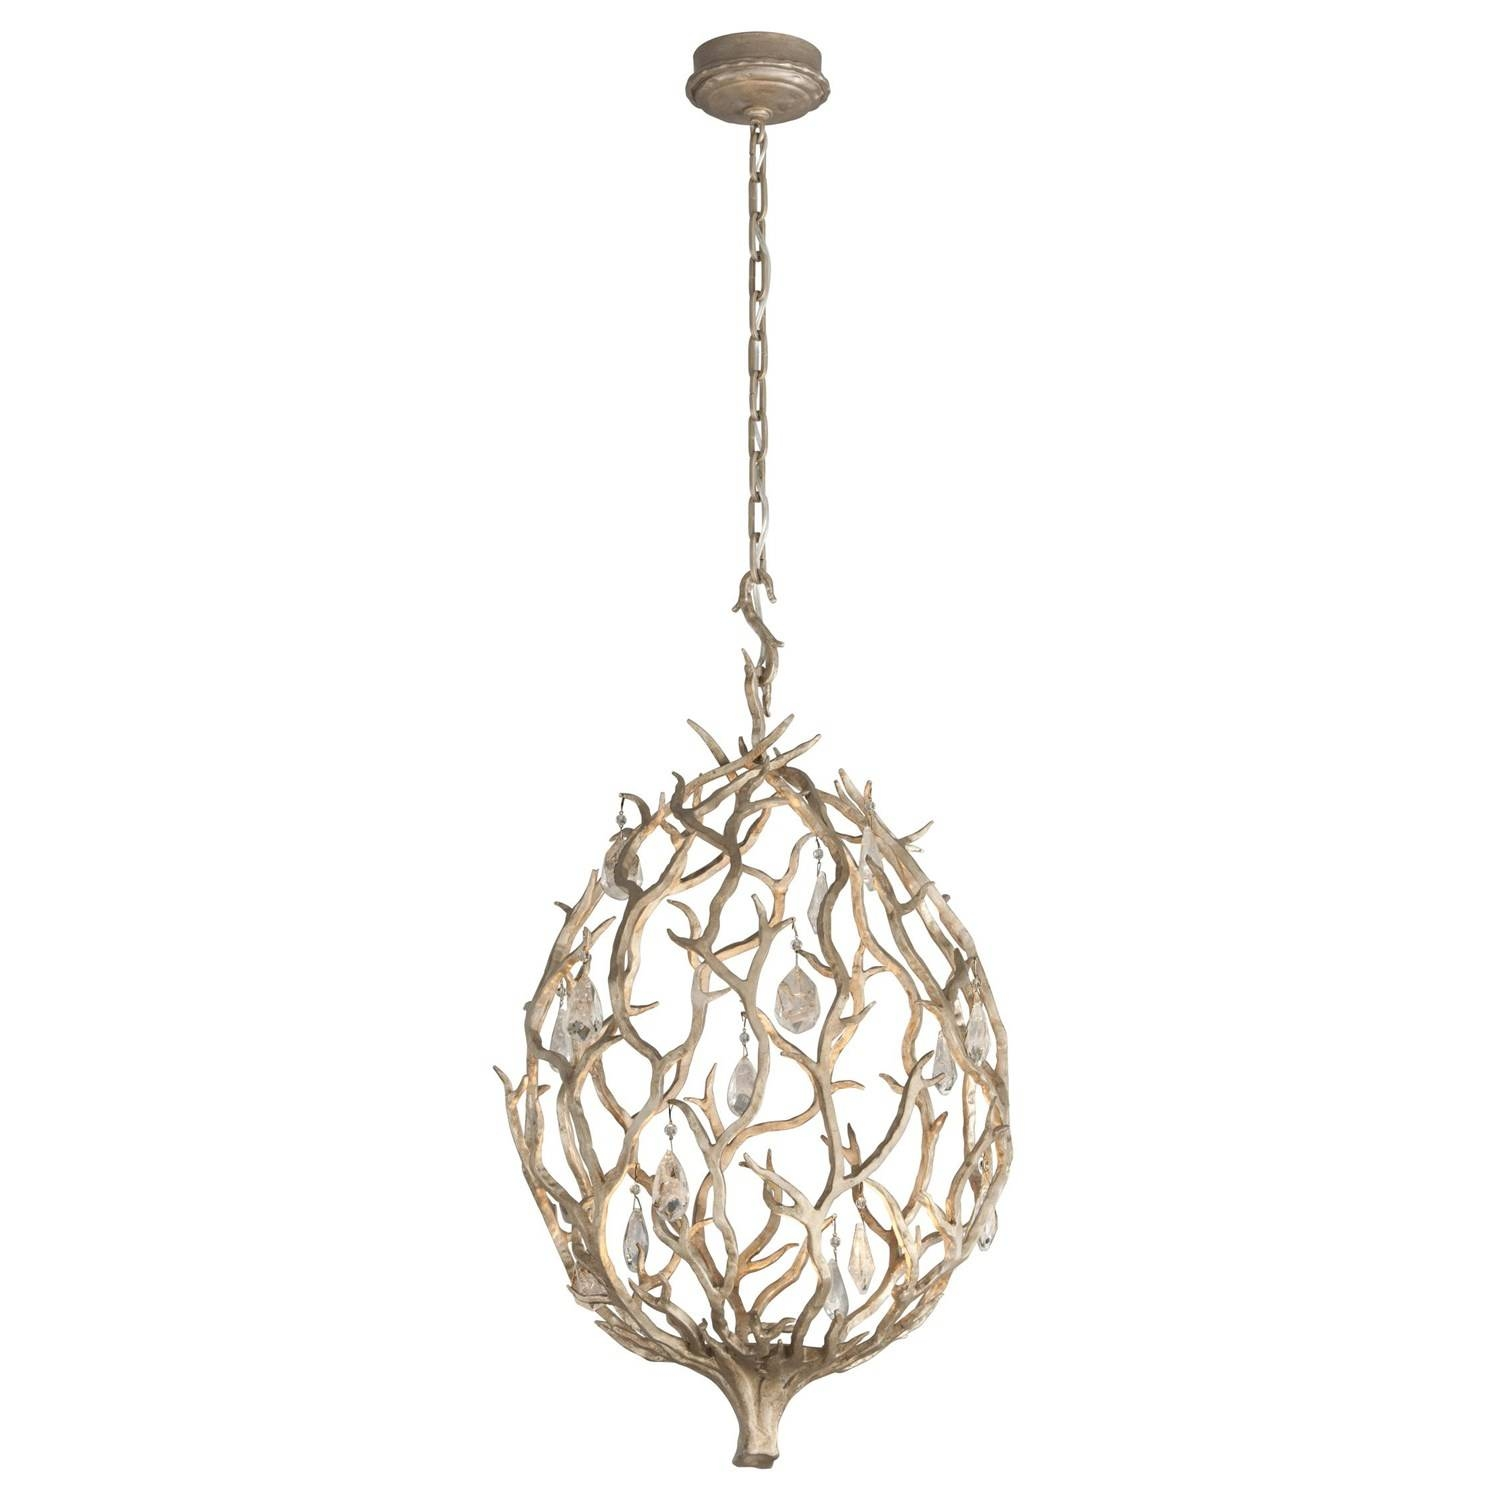 Corbett 205-41 Enchanted 1 Light Small Pendant In Enchanted Silver regarding Corbett Vertigo Small Pendant Lights (Image 3 of 15)